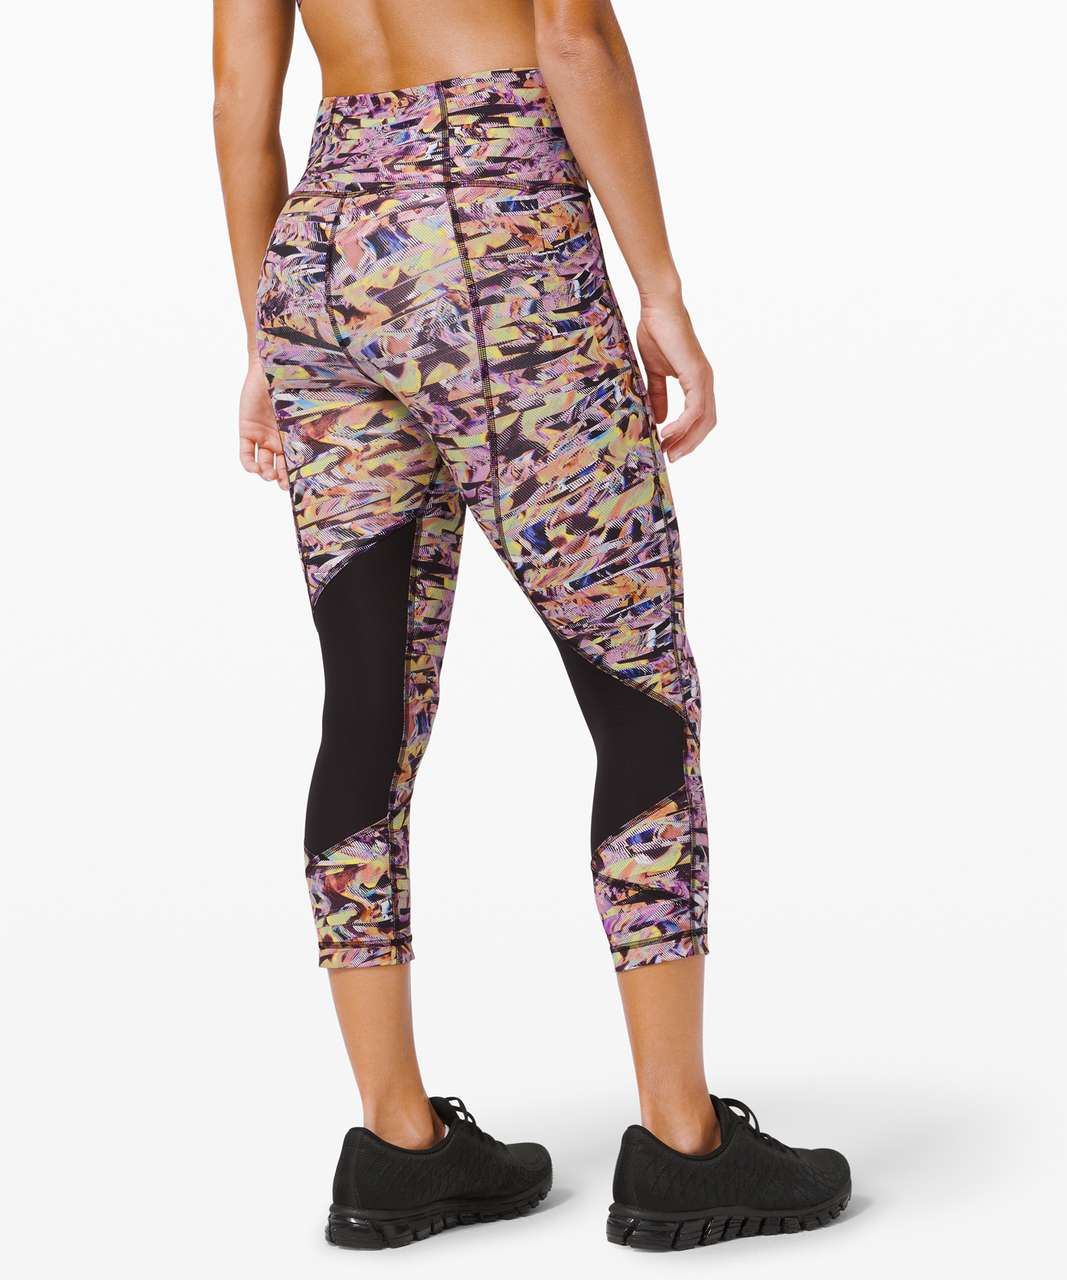 "Lululemon Pace Rival High-Rise Crop 22"" *SeaWheeze - Super Sonic Alpine White Purple Multi"